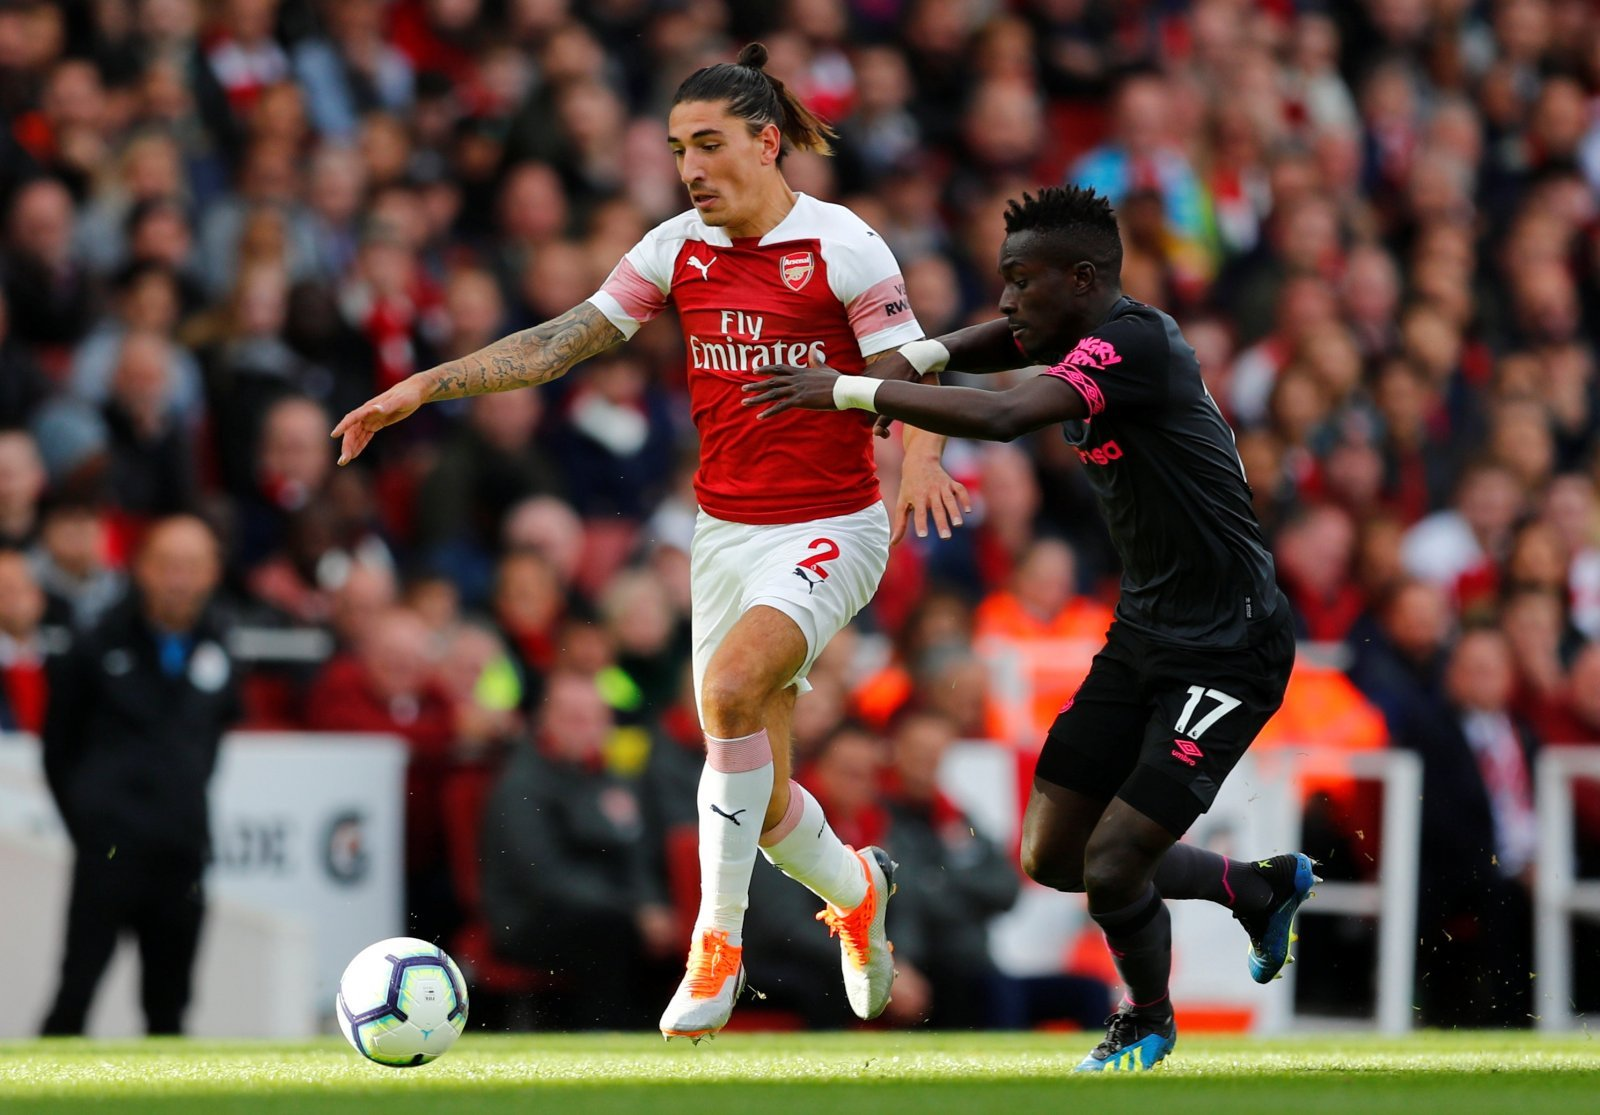 Arsenal fans are absolutely spot on: Hector Bellerin seriously needs to improve